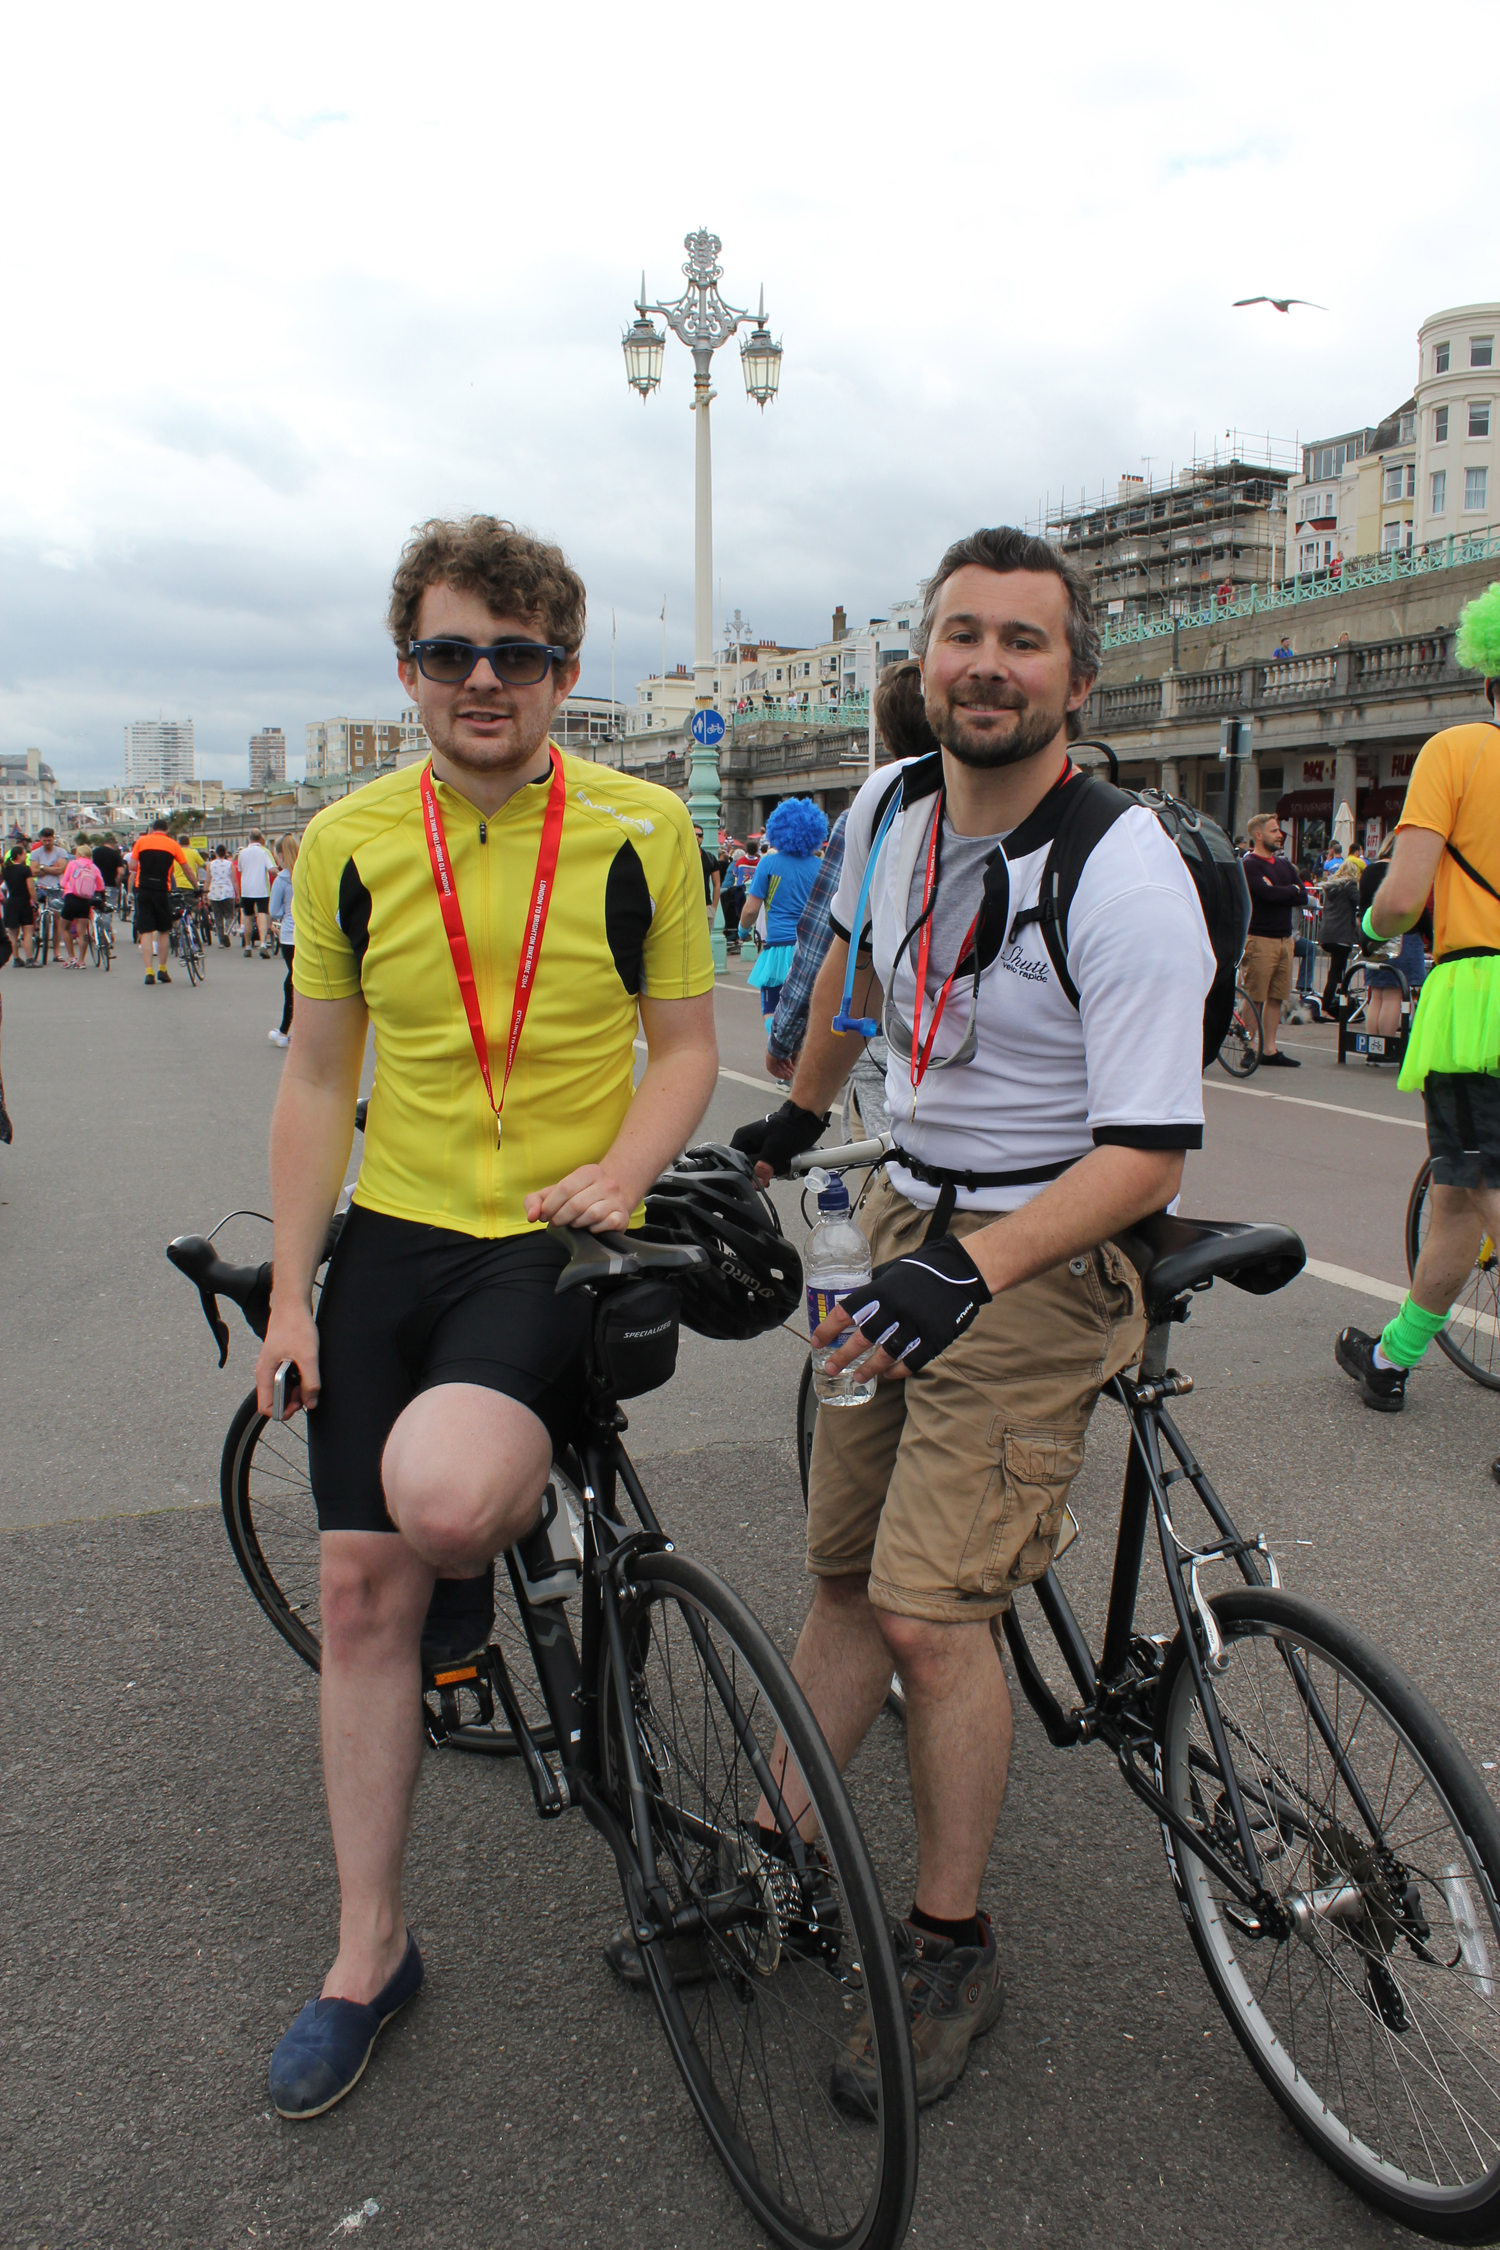 Completed London to Brighton Bike Ride by Mainwood Architects